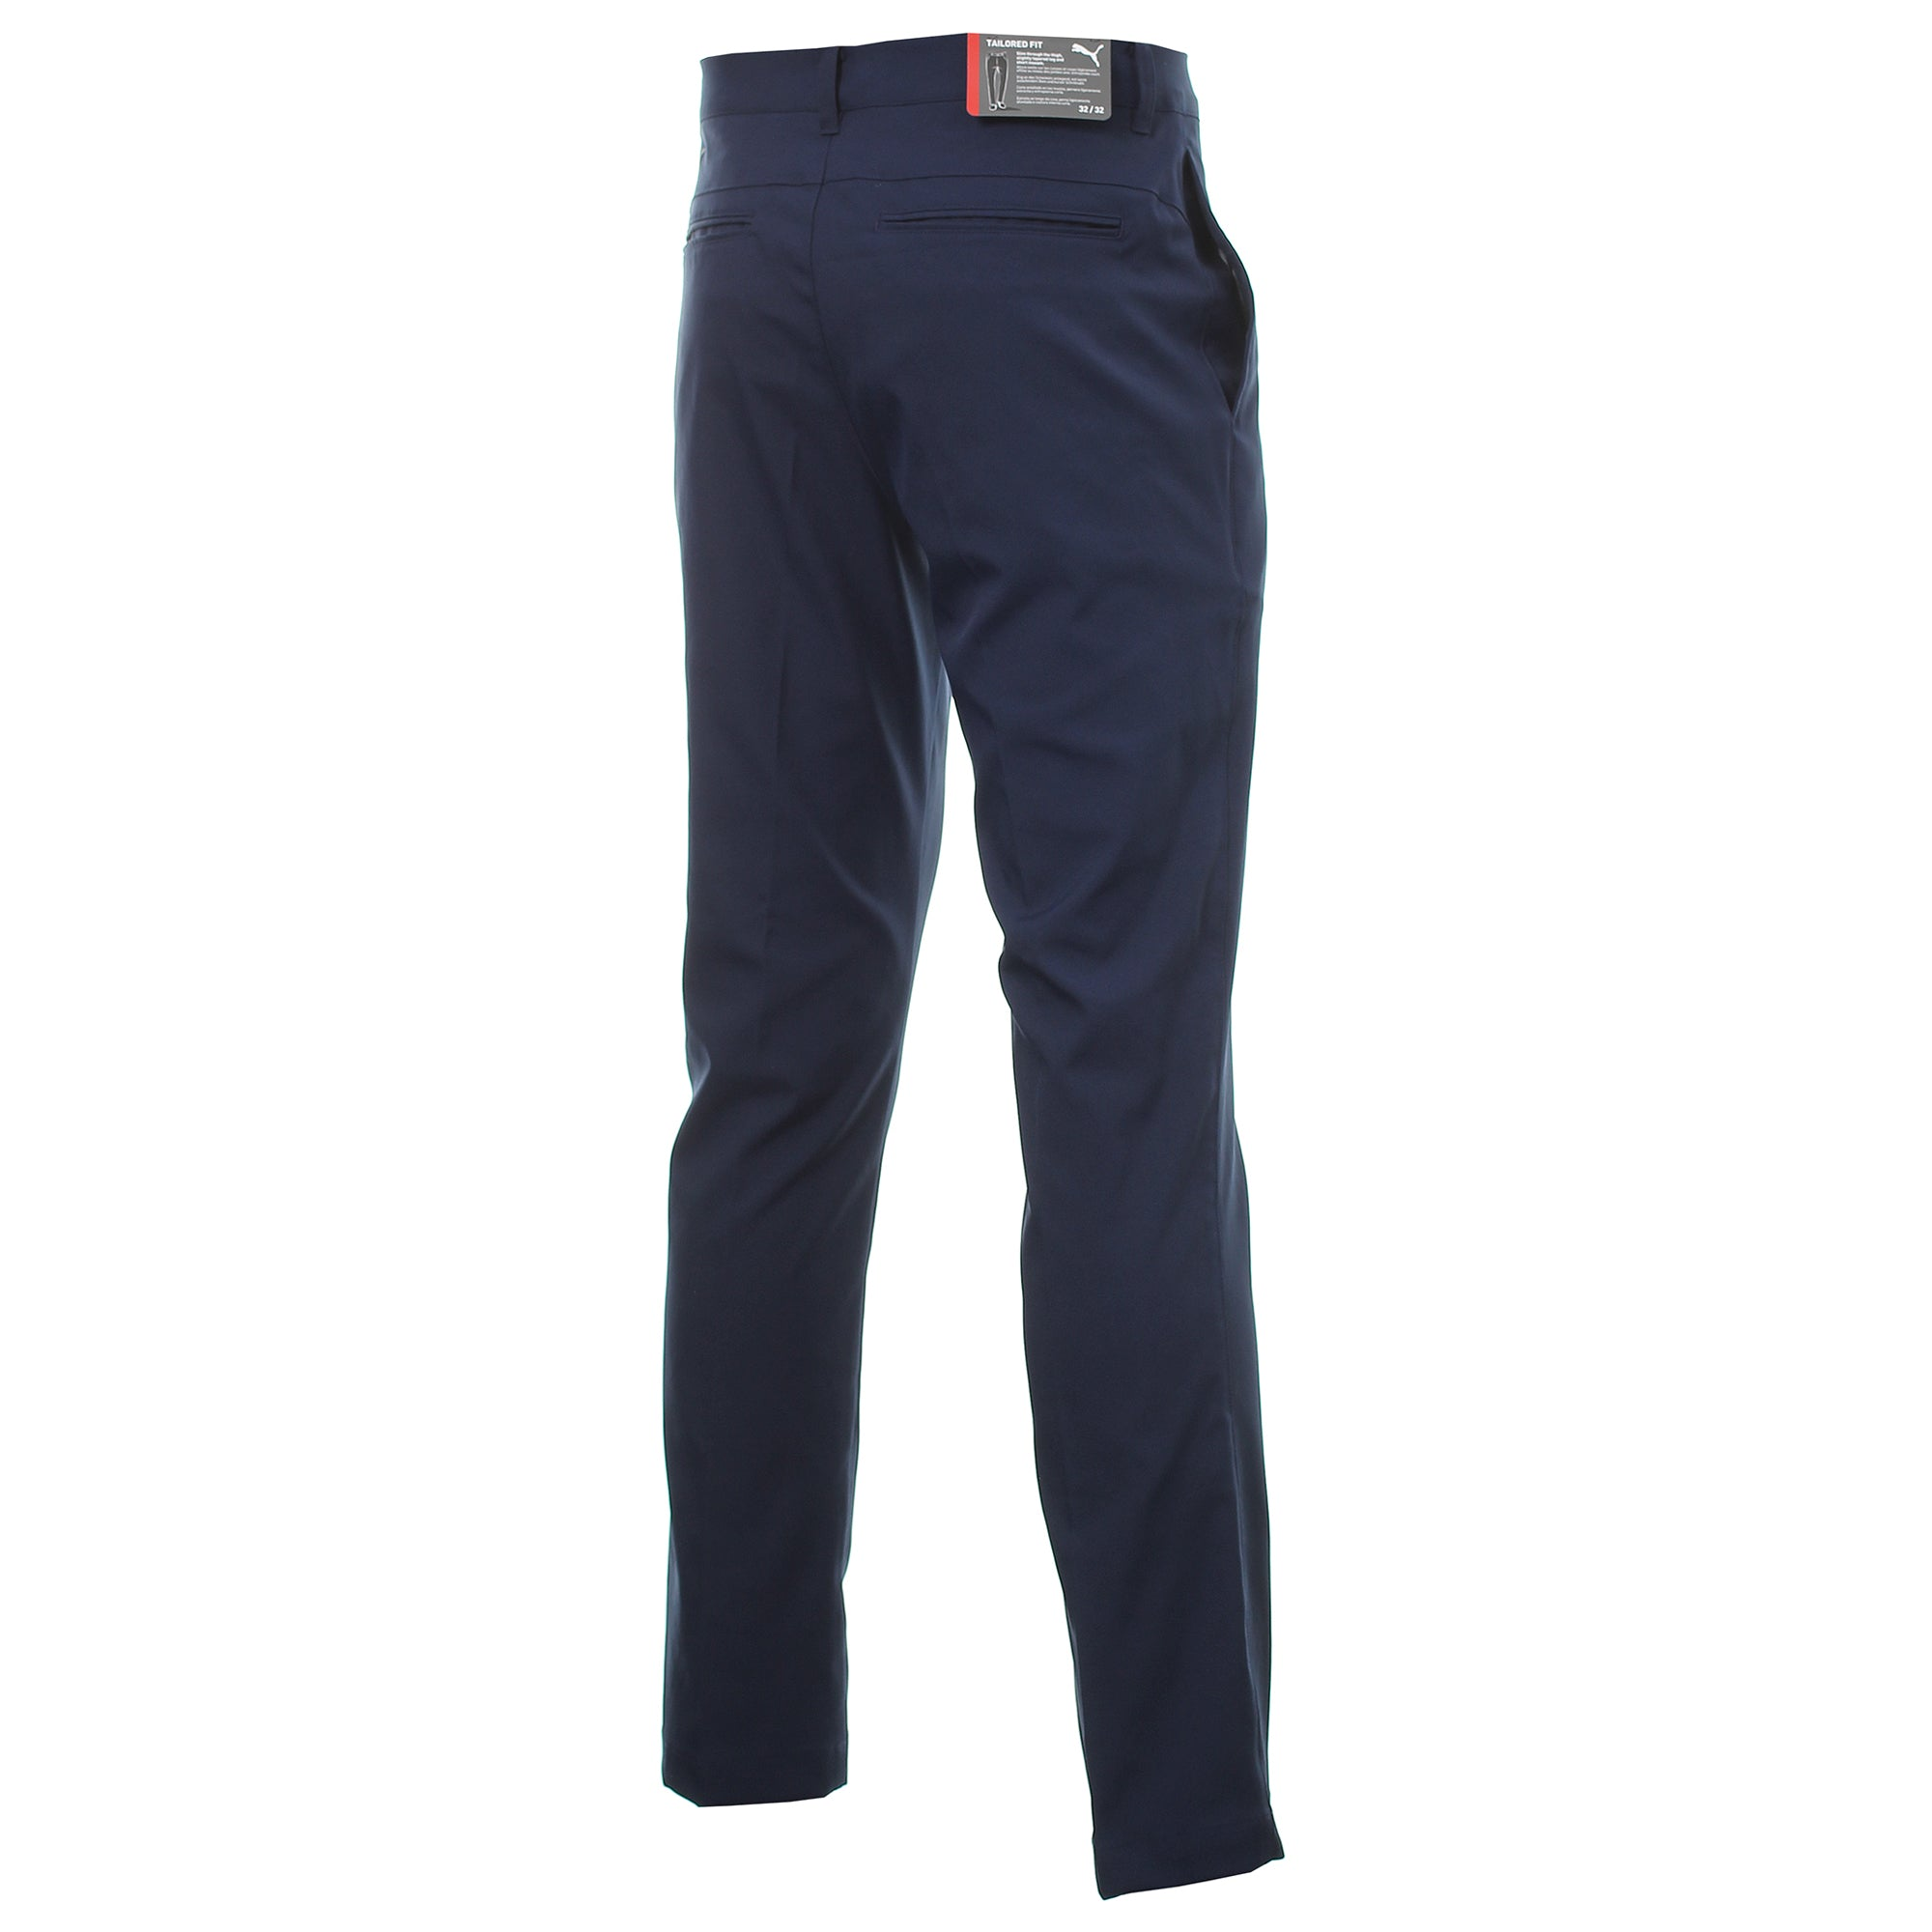 Puma Golf Jackpot Tailored Pants